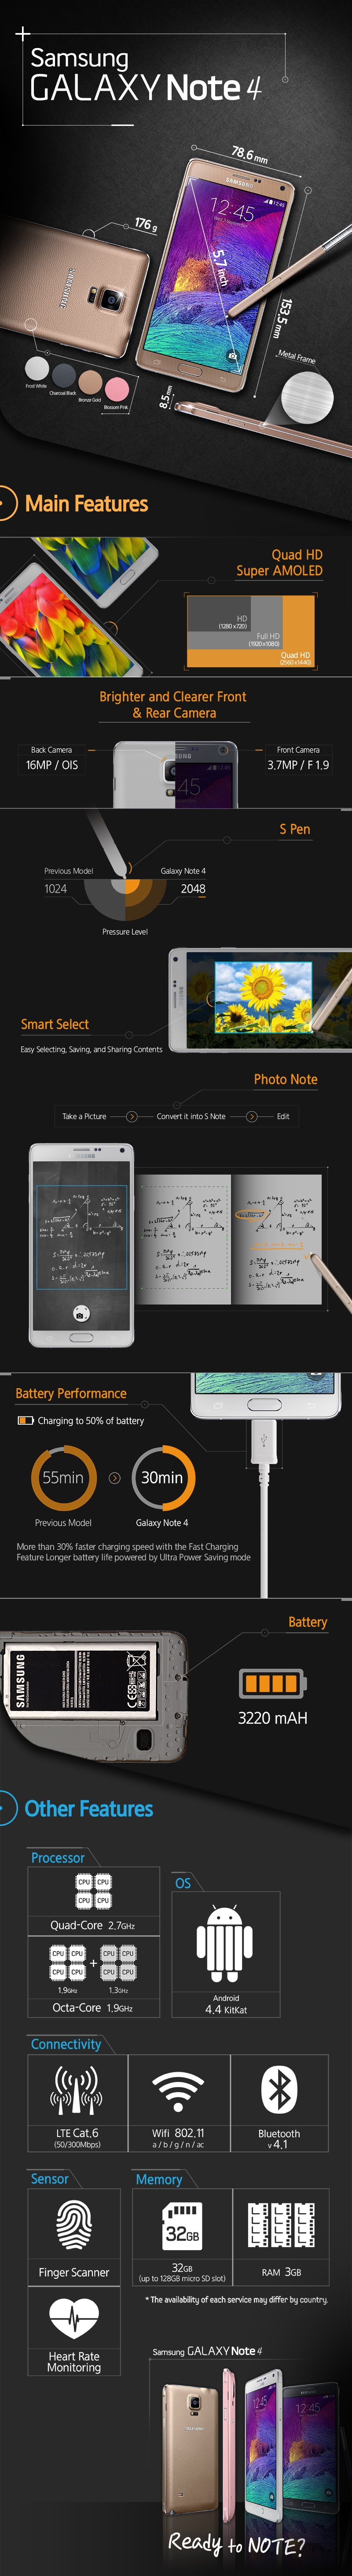 [Infographic] The main features of the Galaxy Note 4